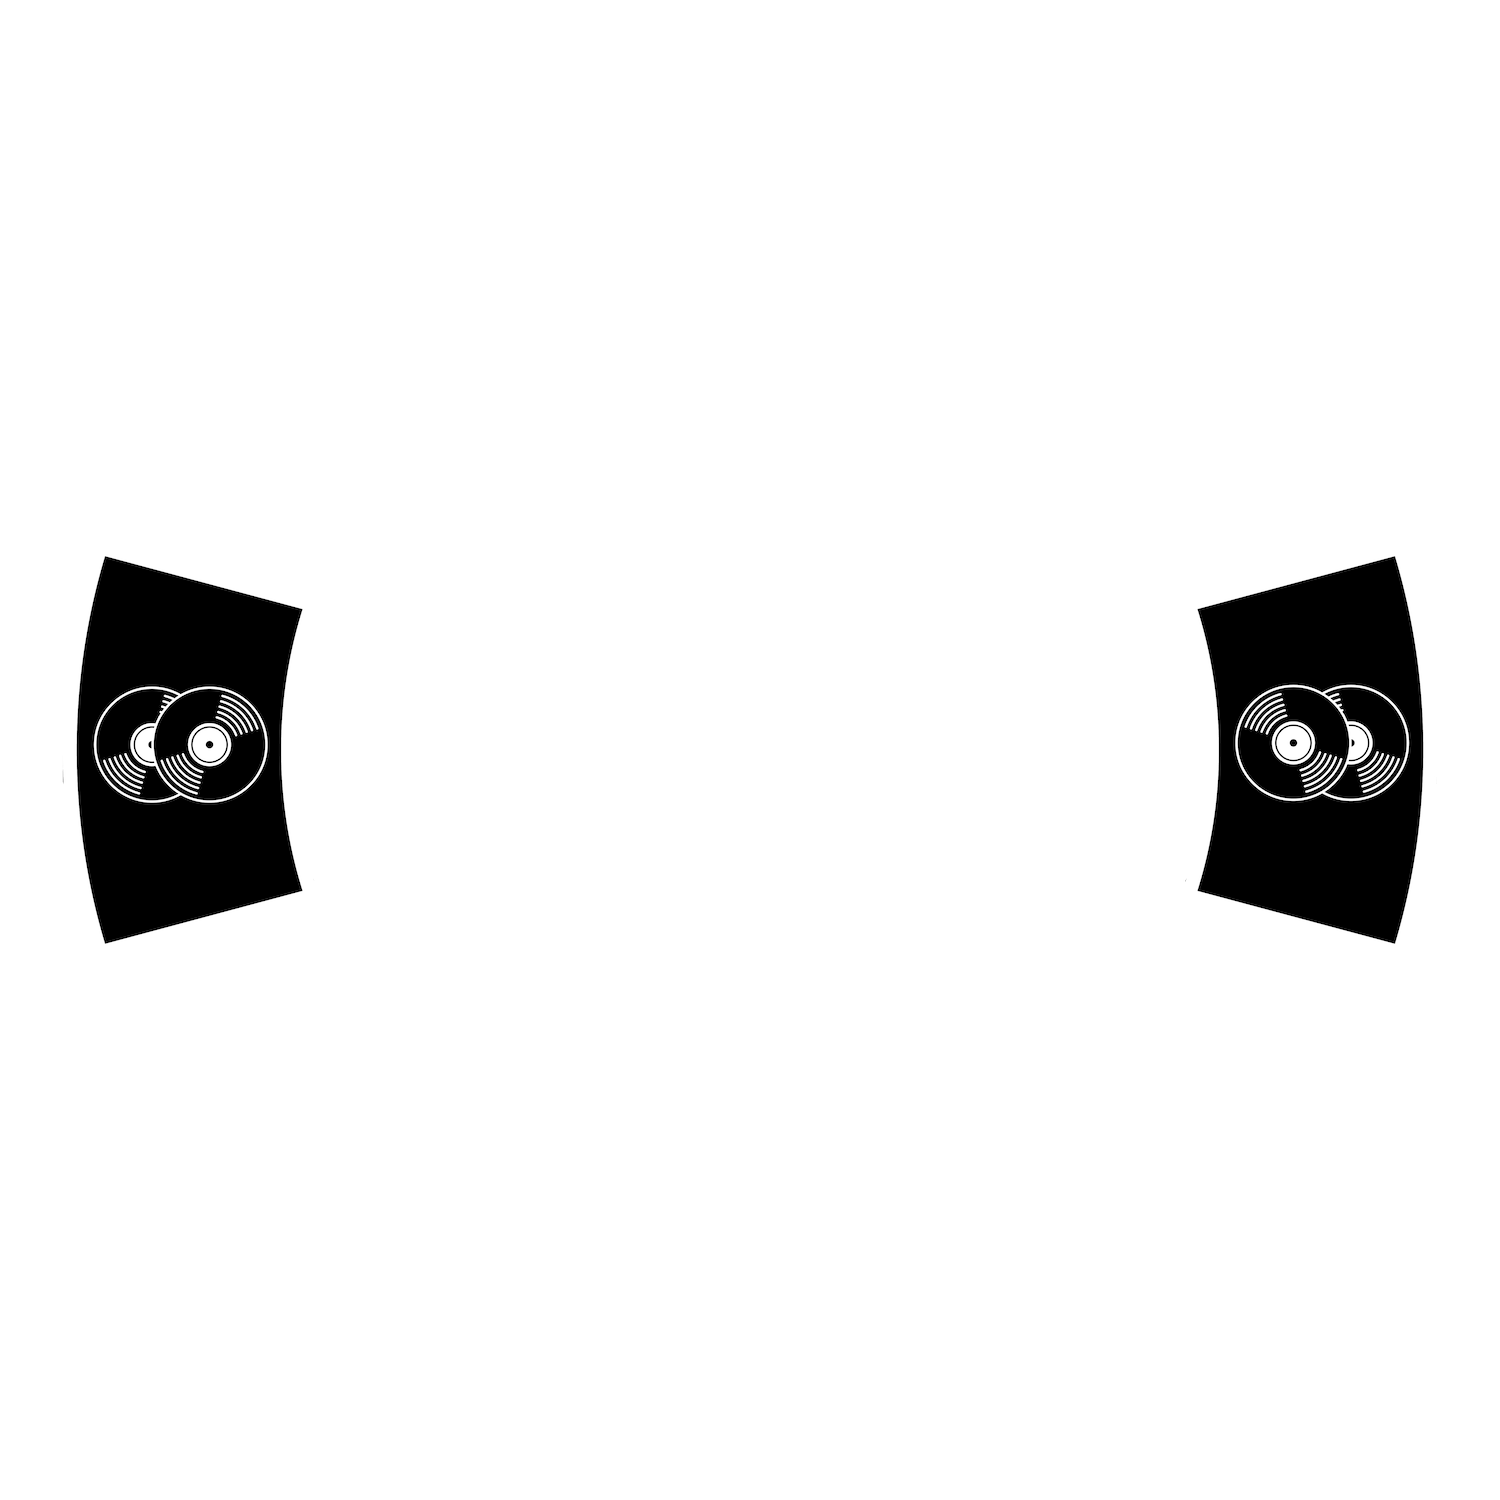 BIG OOMP RECORDS | OOMP CAMP PRODUCTIONS